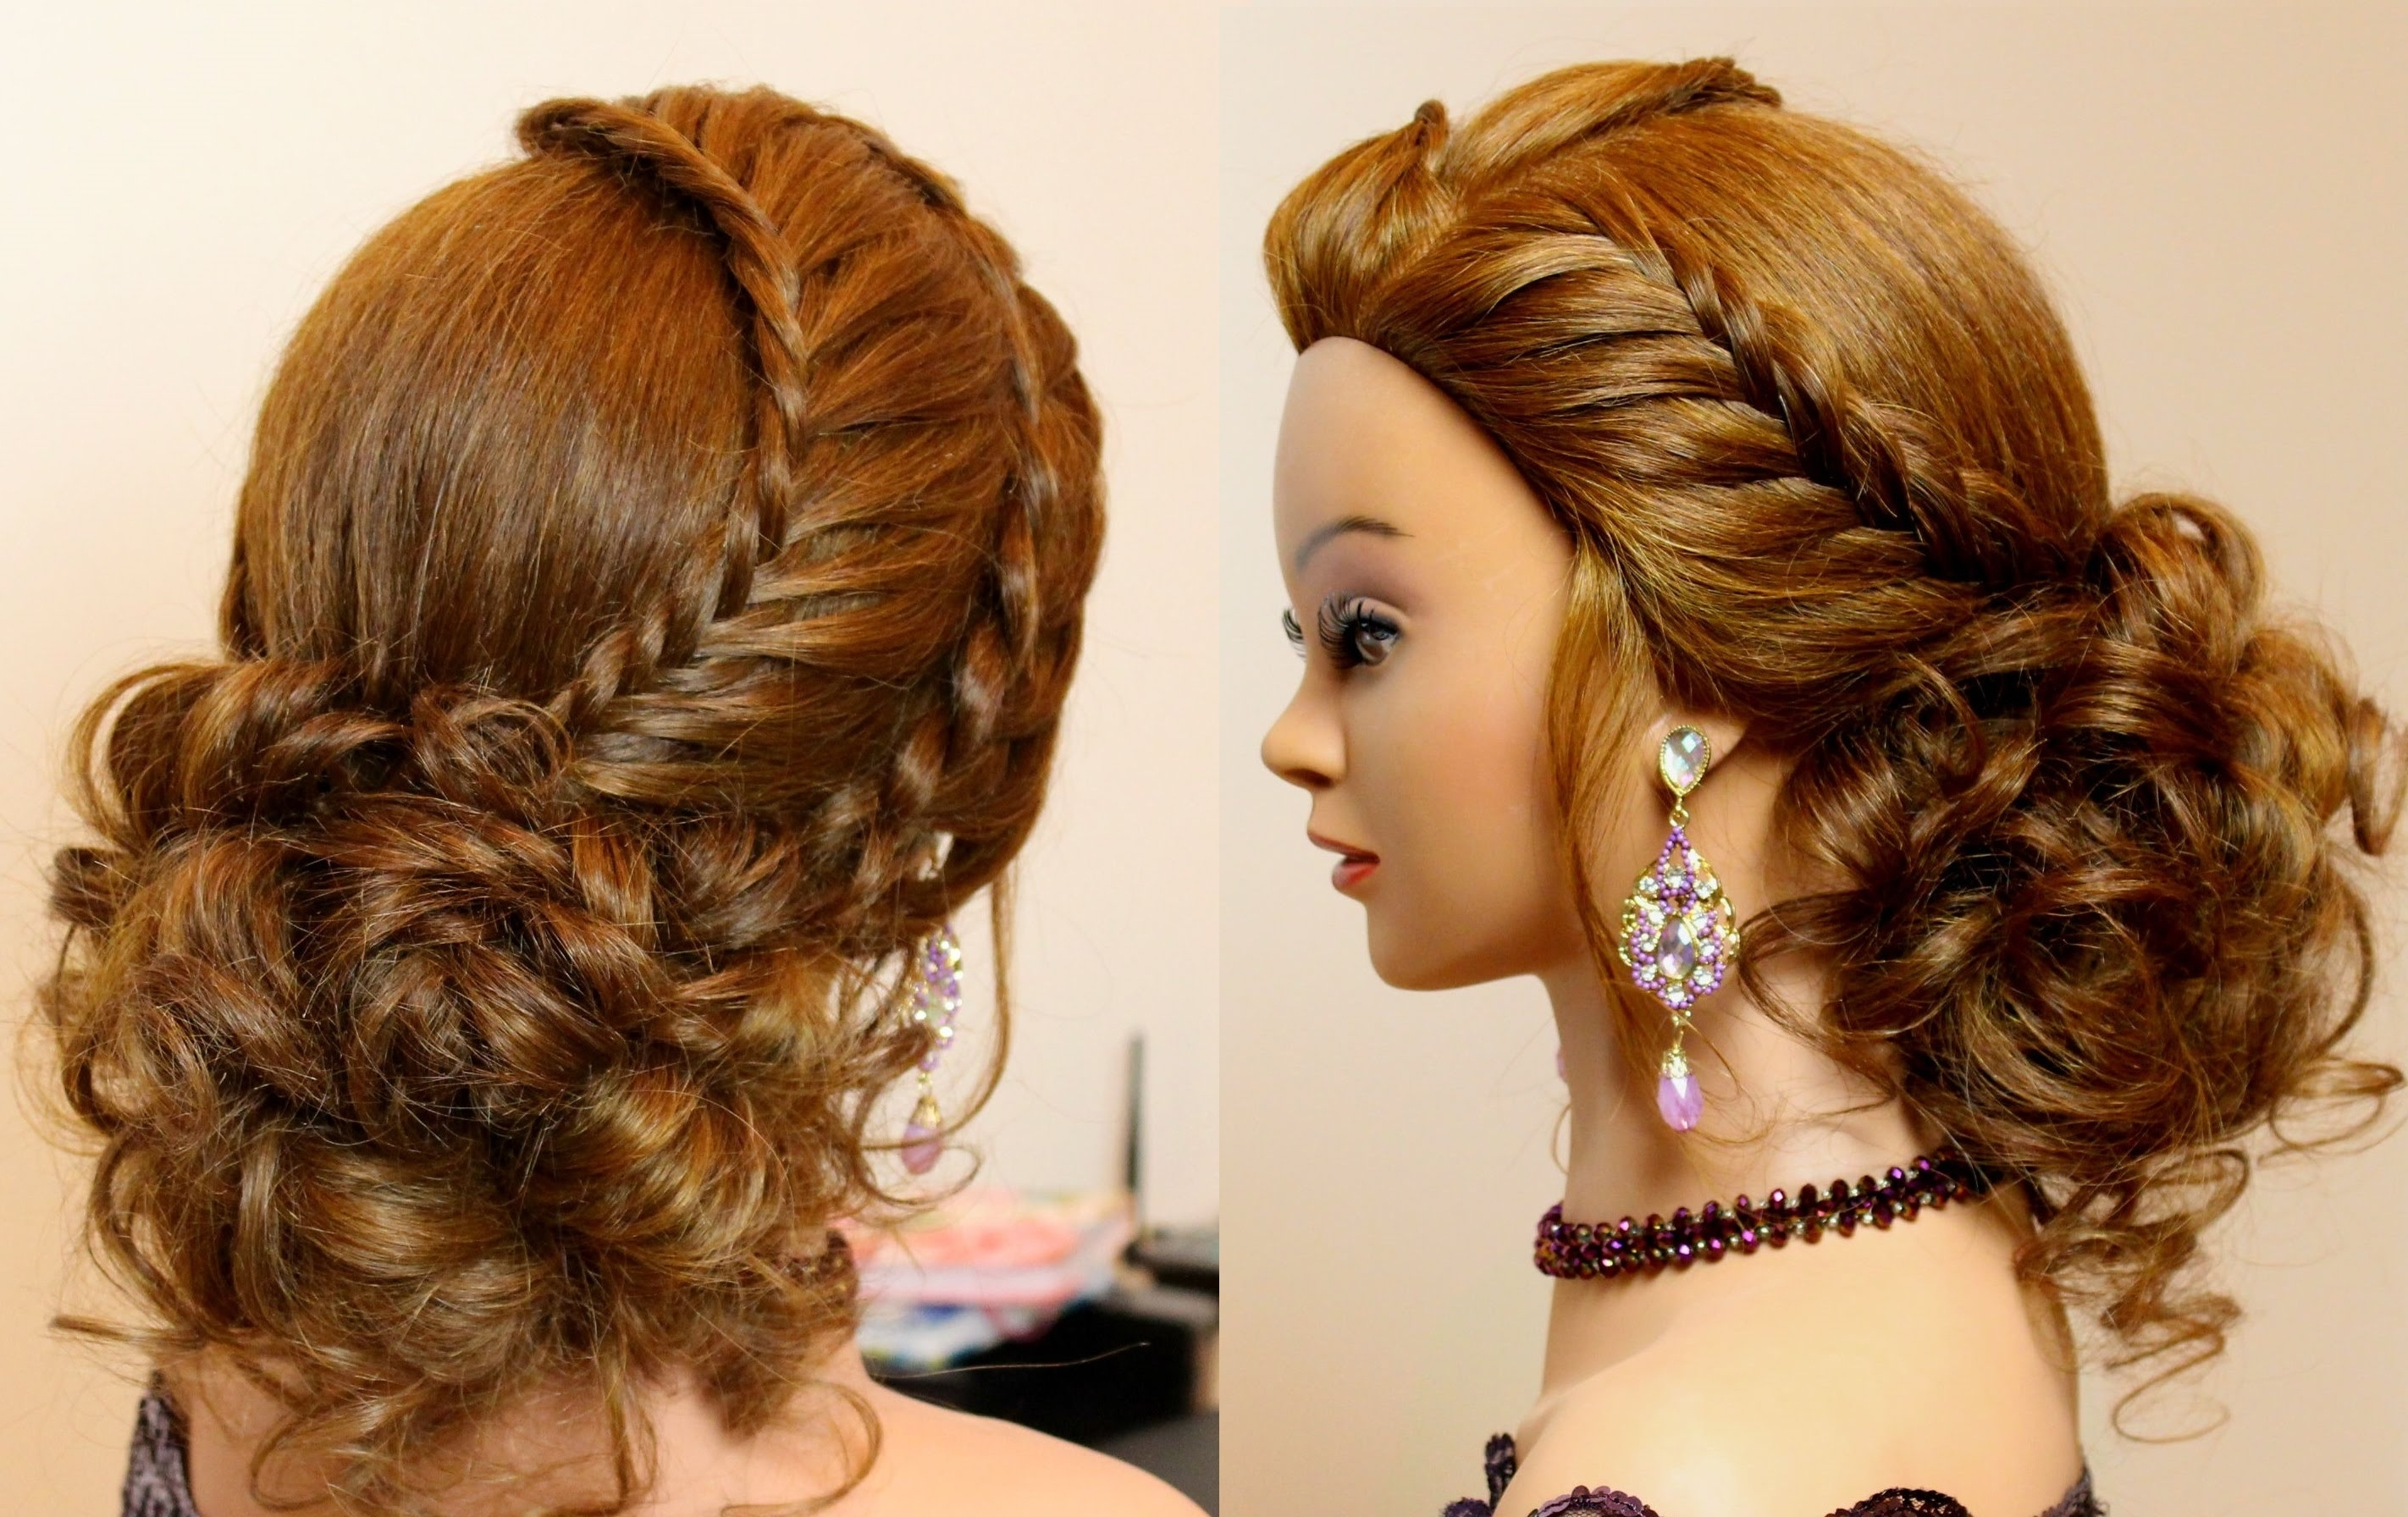 Prom Updo Hairstyles For Long Hair Hairstyle For Long Hair Tutorial Inside Prom Updo Hairstyles For Long Hair (View 13 of 15)